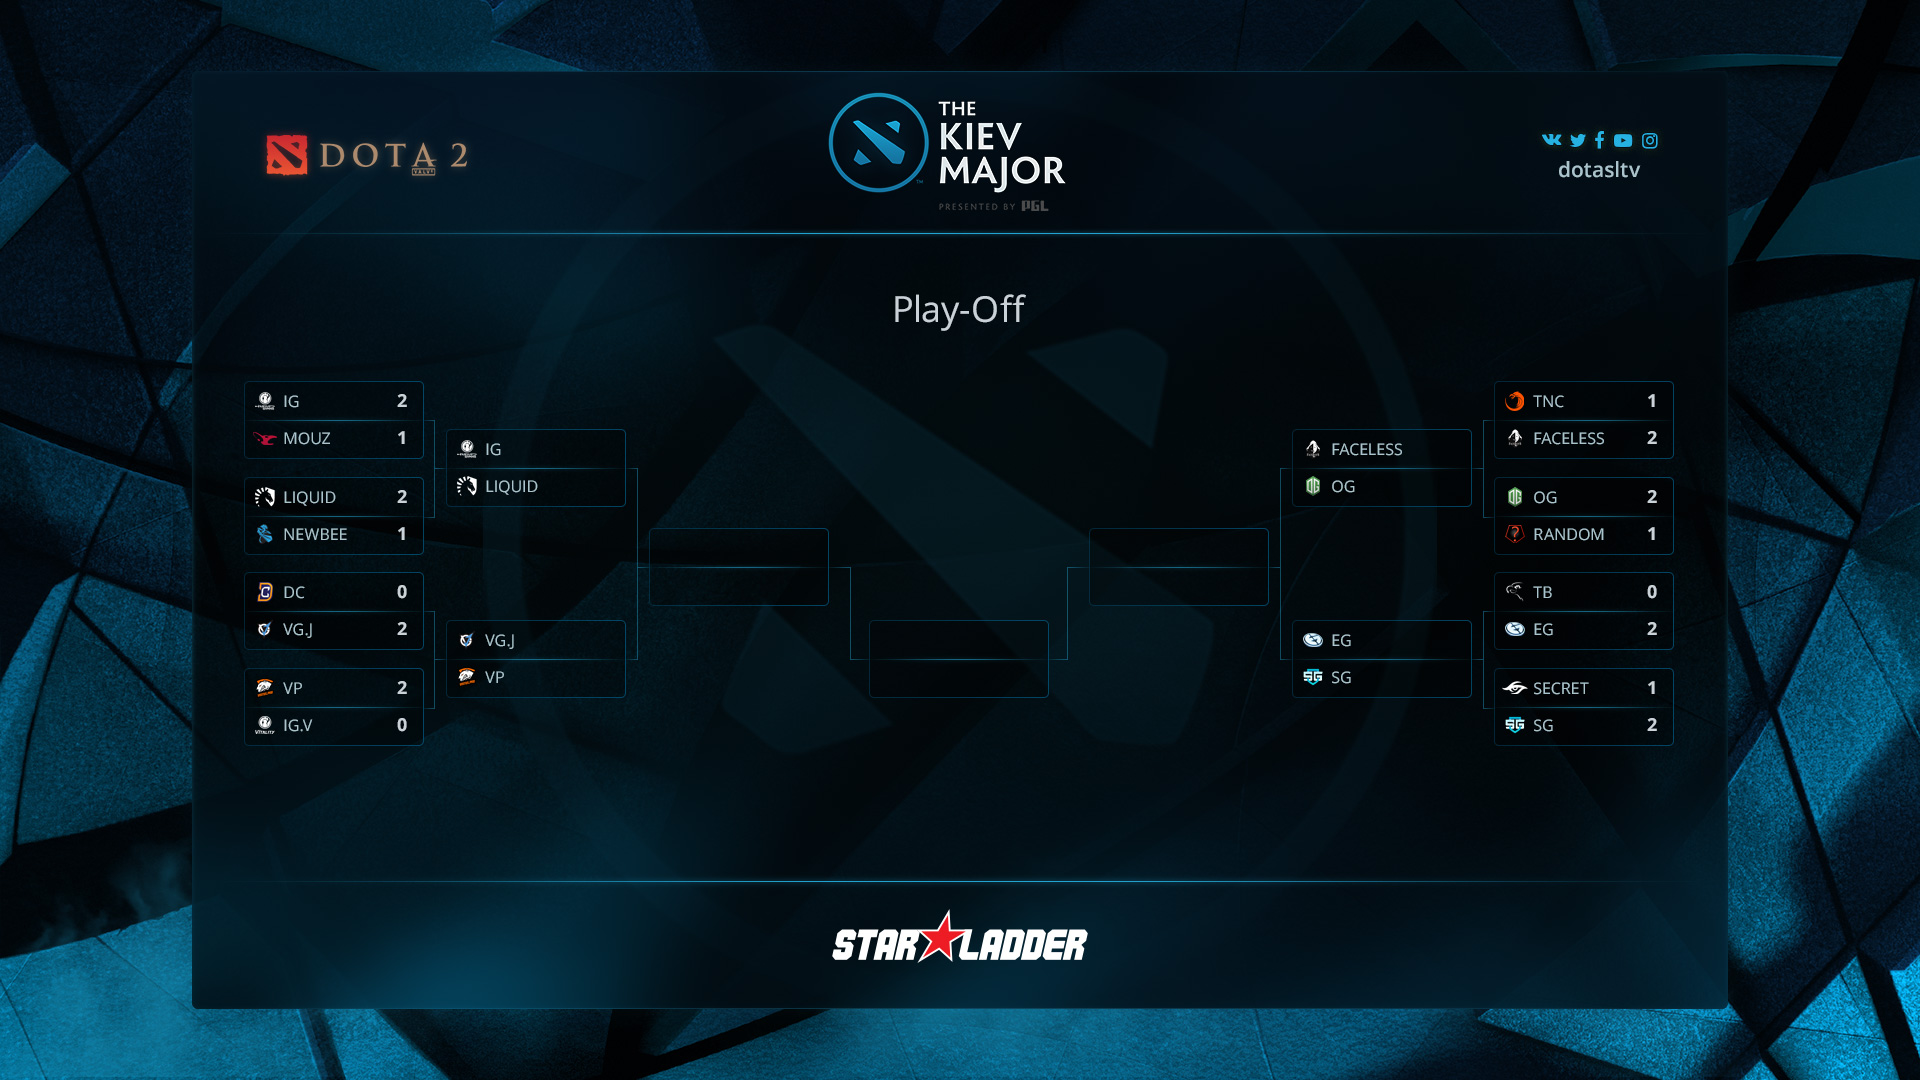 The Kiev Major playoffs